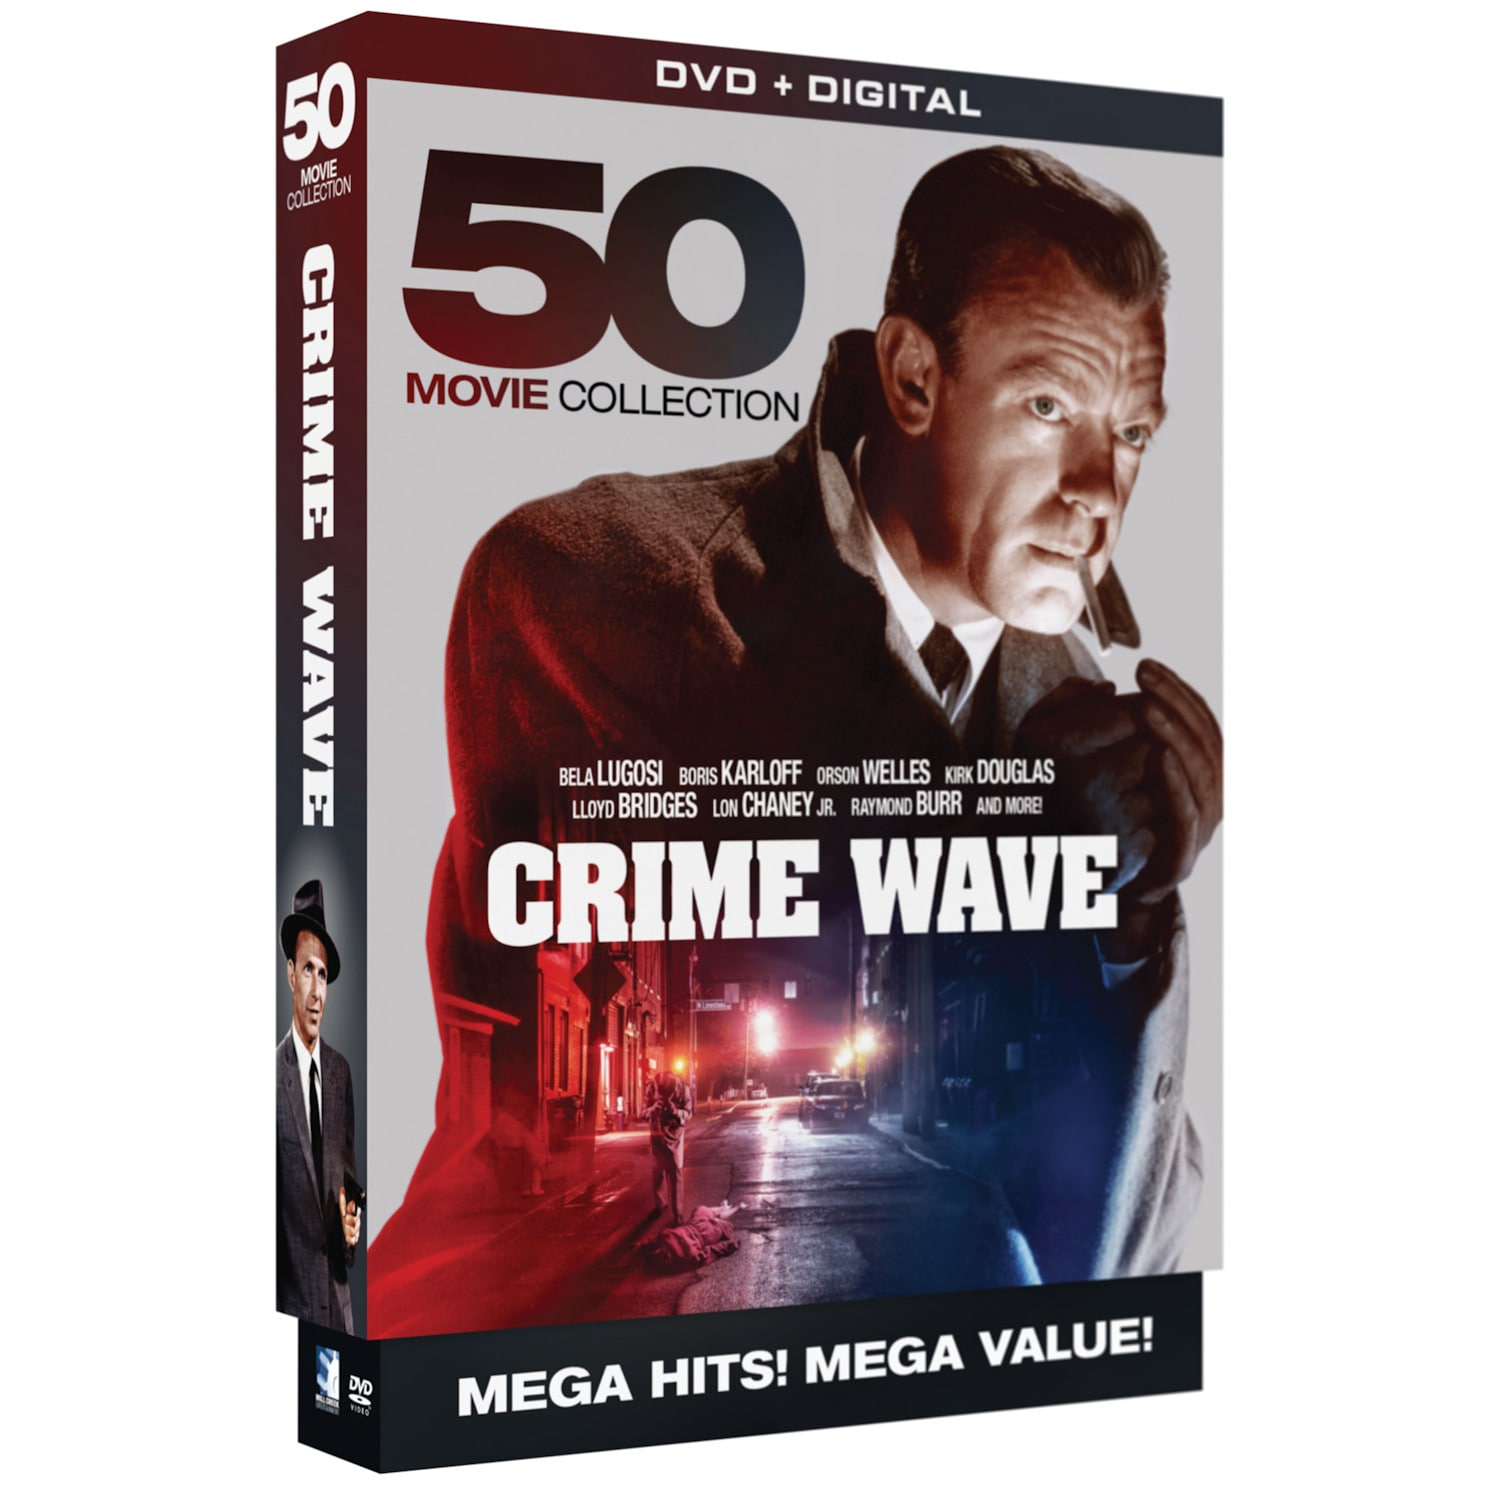 Details about Crime Wave - 50 Mystery Crime Film Noir Movies -10 DVD Boxed  Set Region 1 (USA)